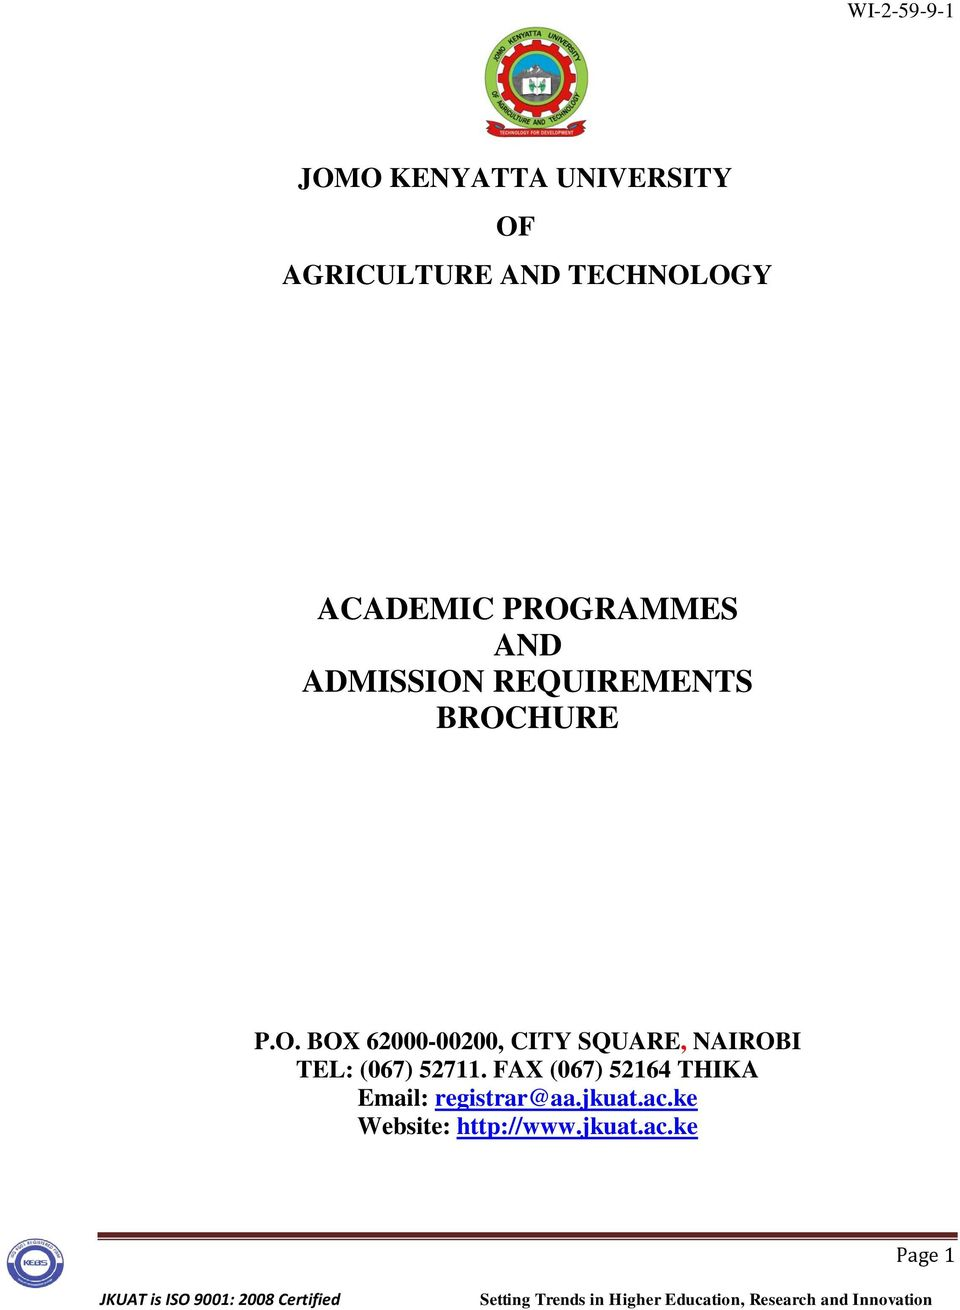 ACADEMIC PROGRAMMES AND ADMISSION REQUIREMENTS BROCHURE - PDF